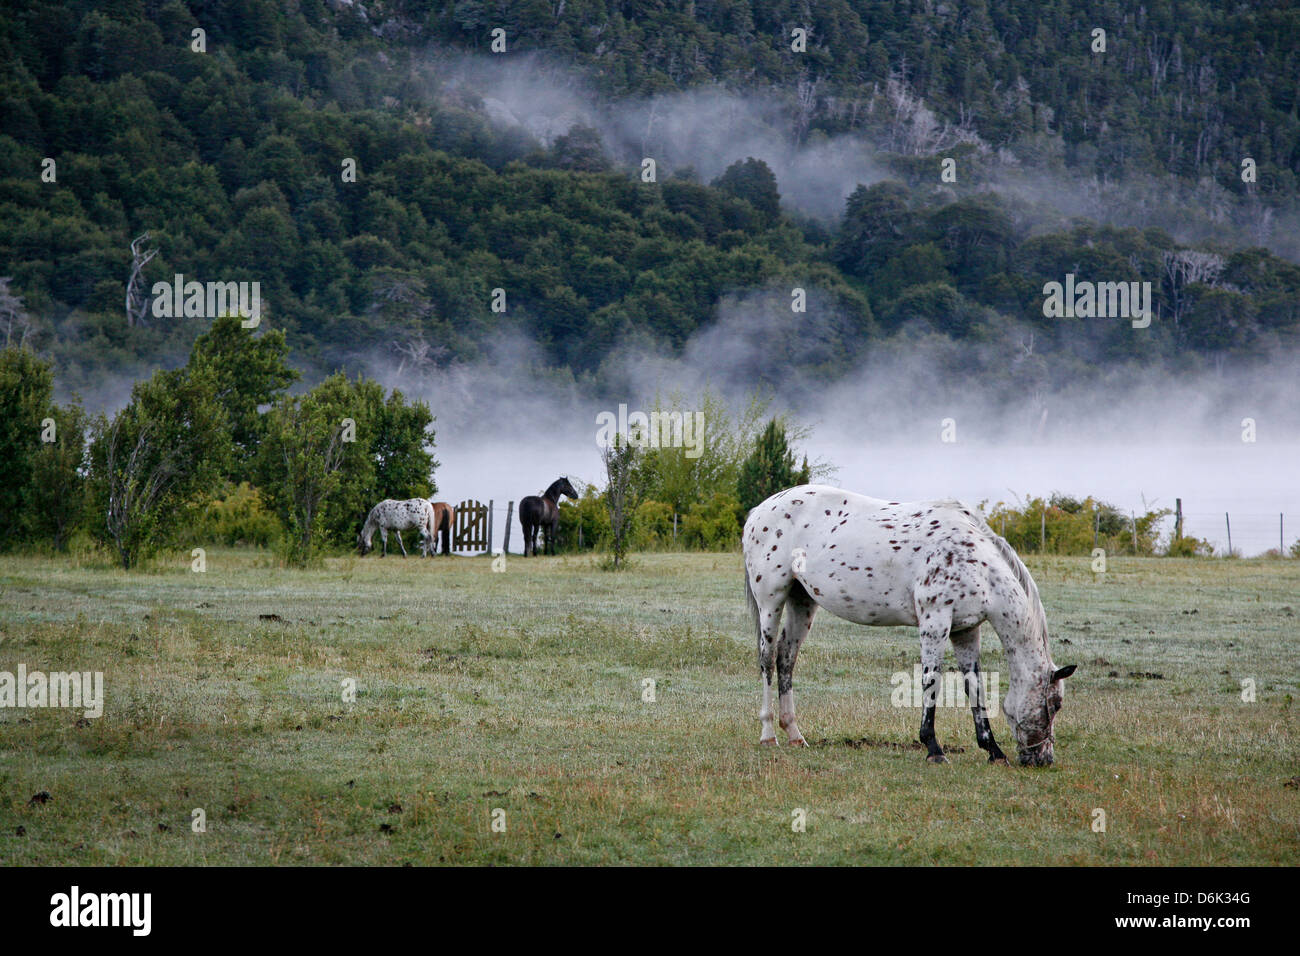 Horses in a field, Patagonia, Argentina, South America - Stock Image